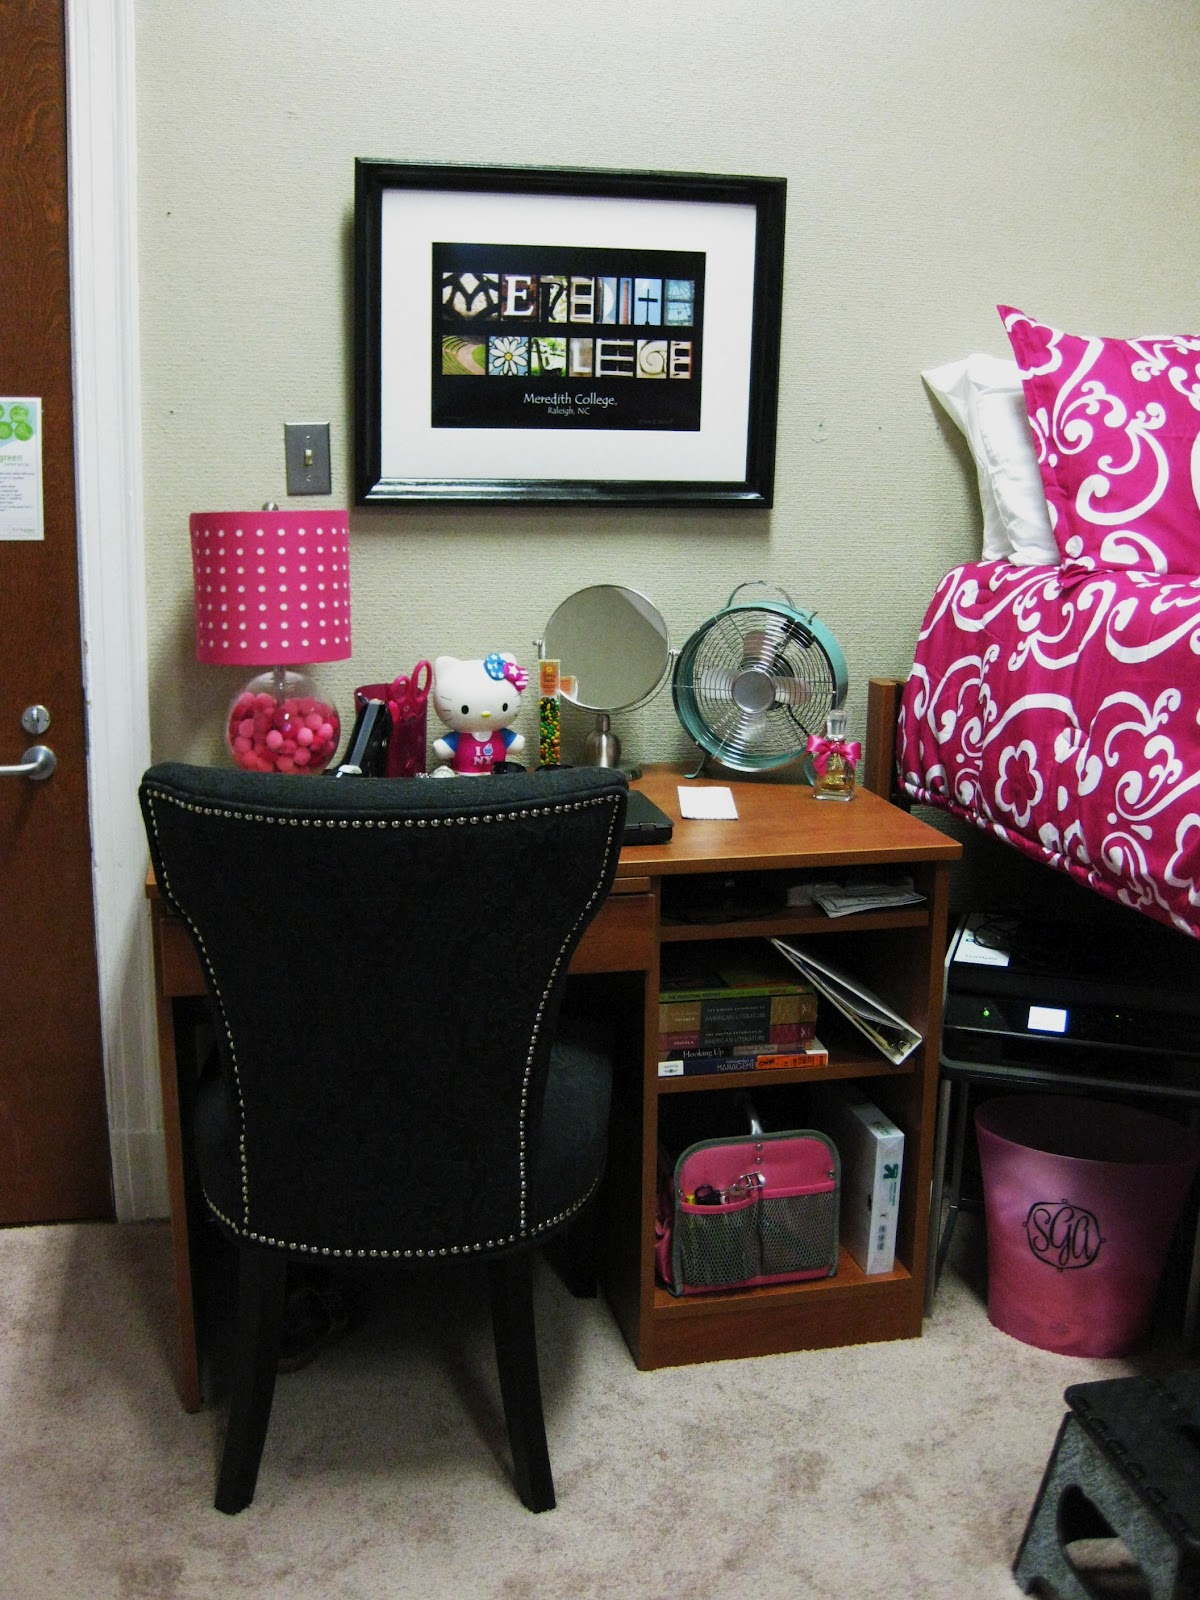 Makeup Chair Walmart White Covers Gumtree Ramblings Of A Southern Girl: Girlie Dorm Decorating